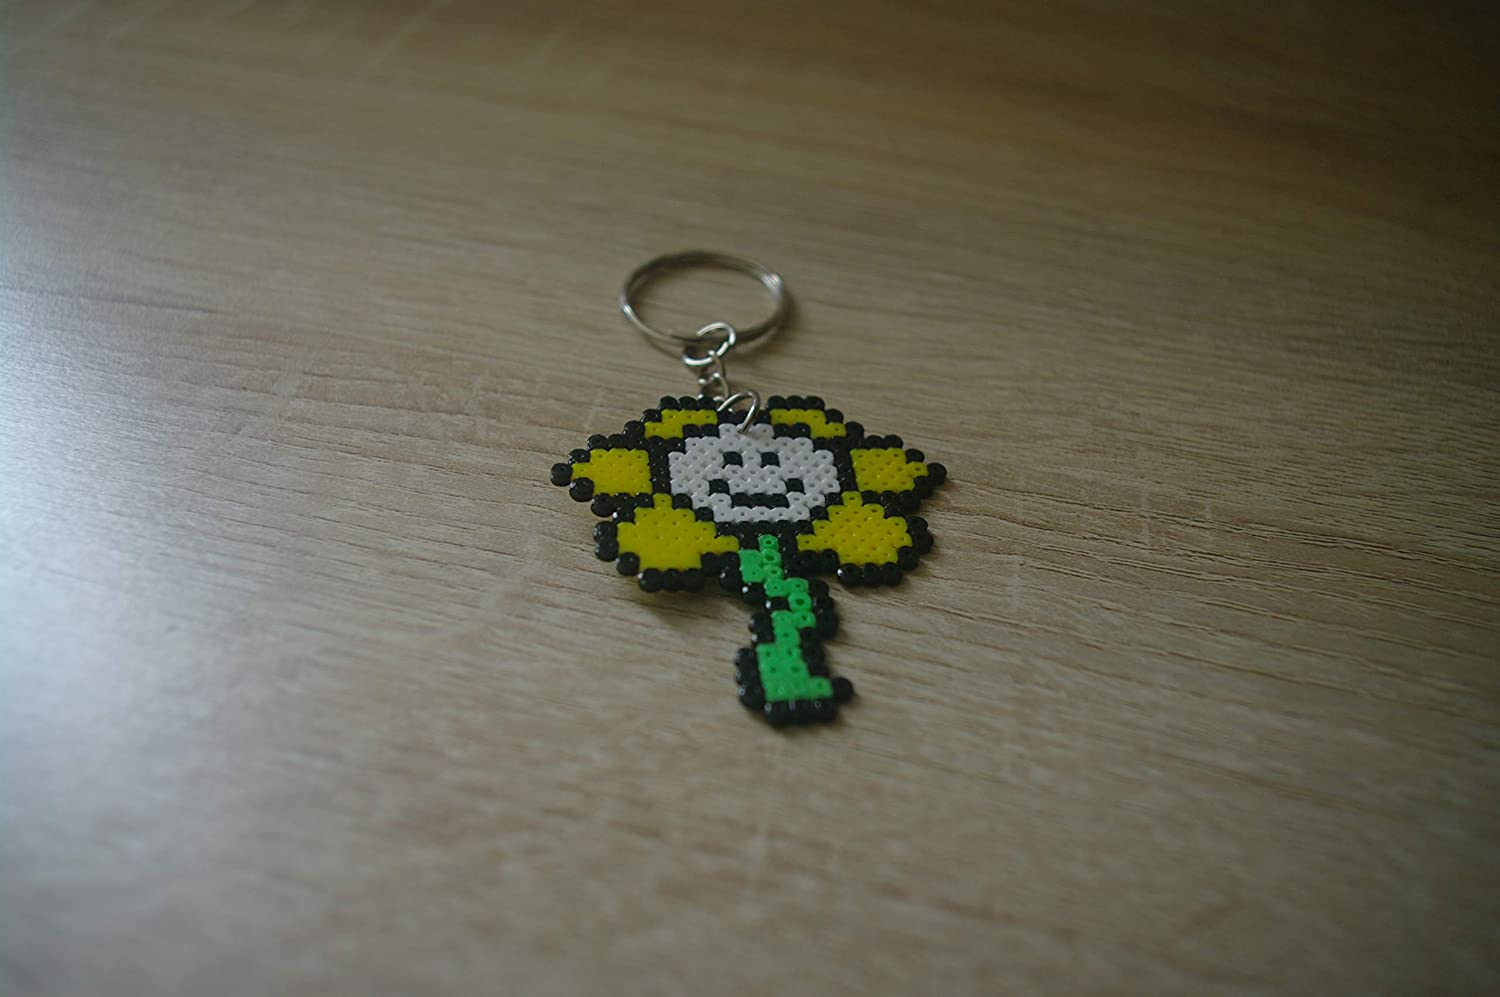 Amazon.com: Keychain PFlowey Undertale - Hama beads/Pixel ...